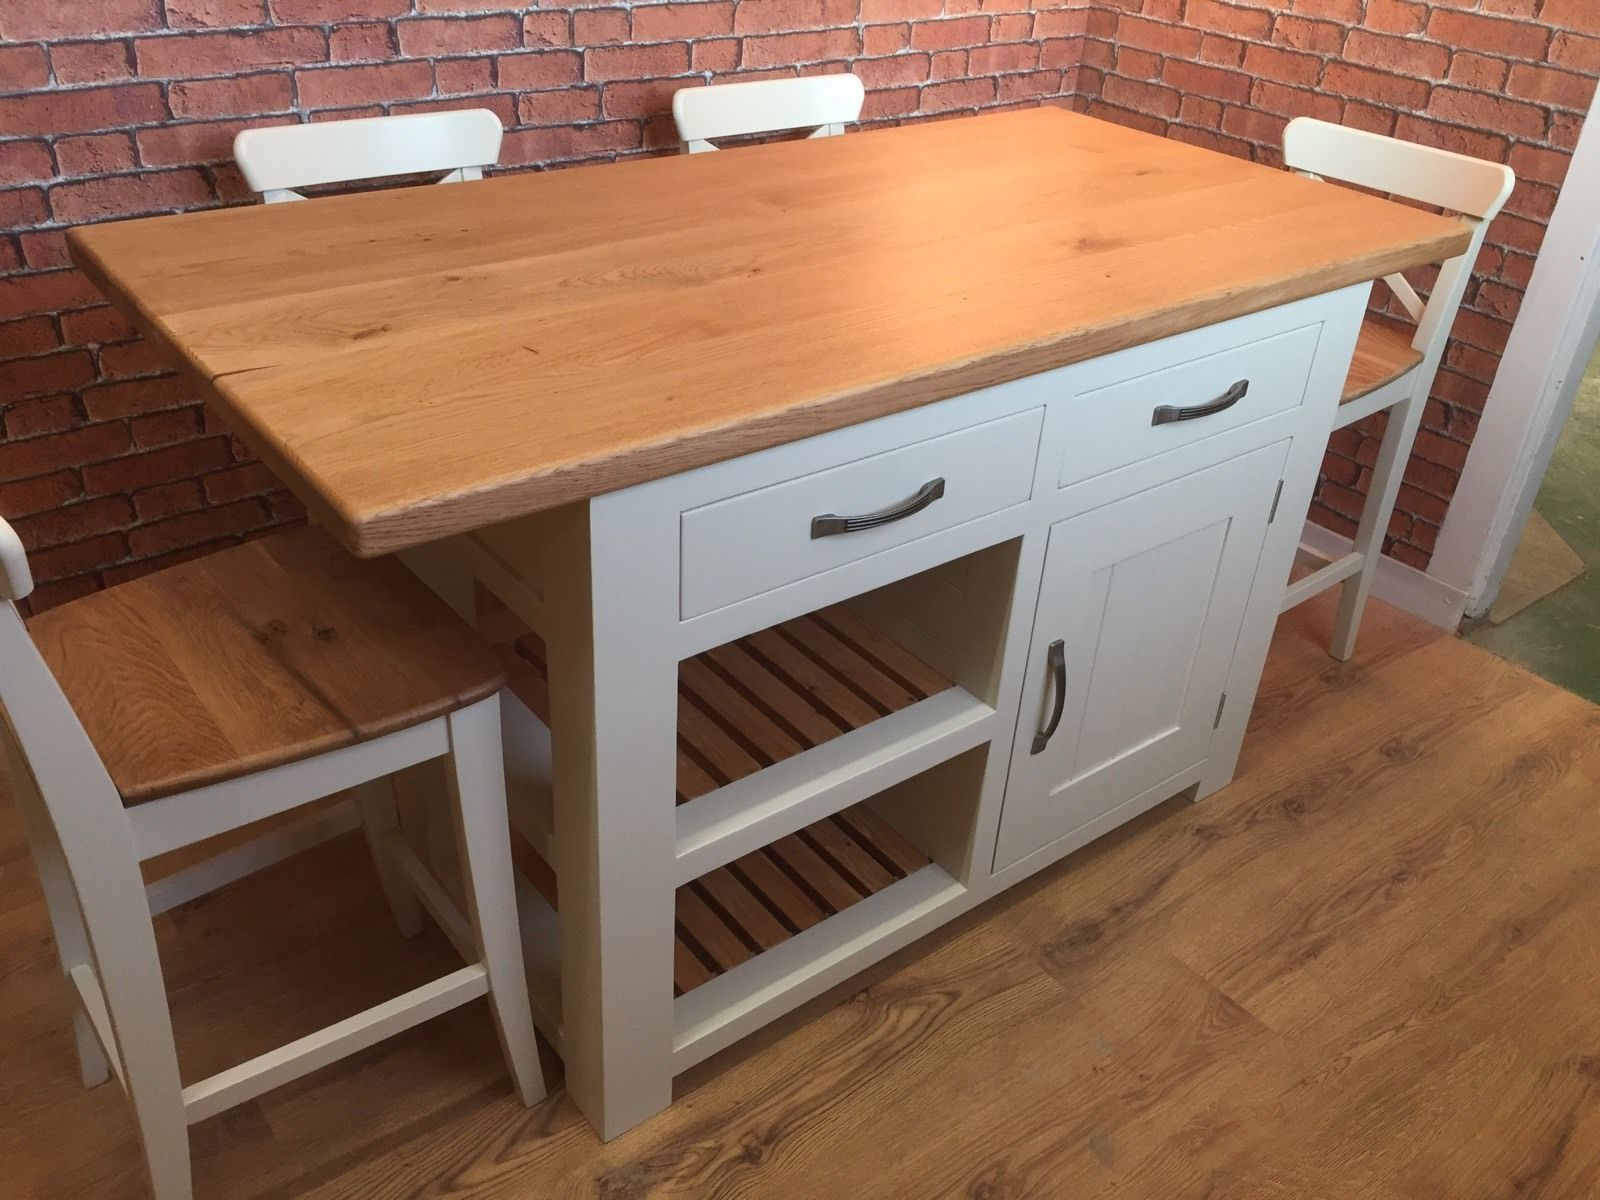 handmade kitchen islands white round table set island solid oak top breakfast bar stools bespoke in home furniture diy carts ebay